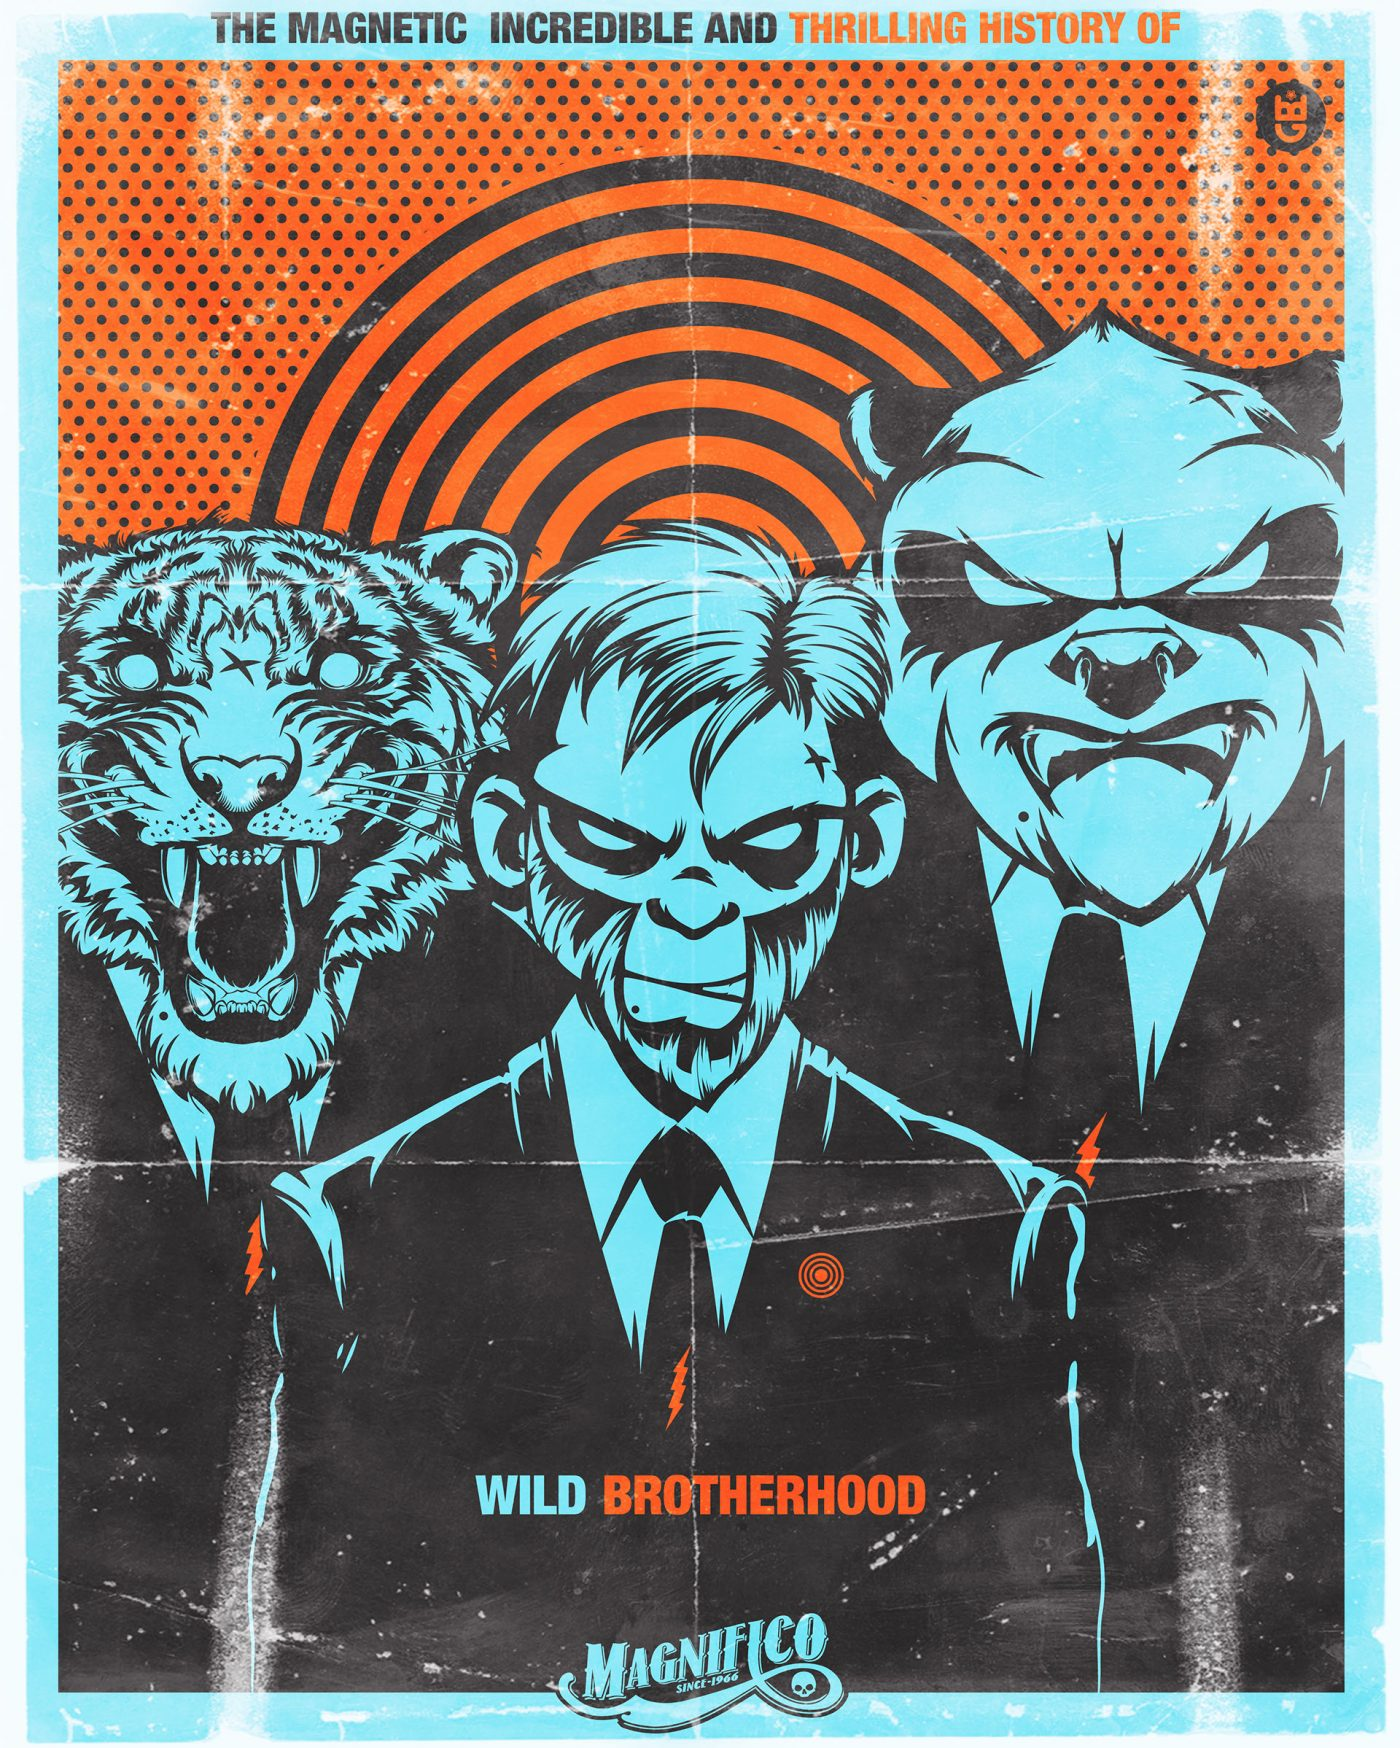 Wild Brotherhood